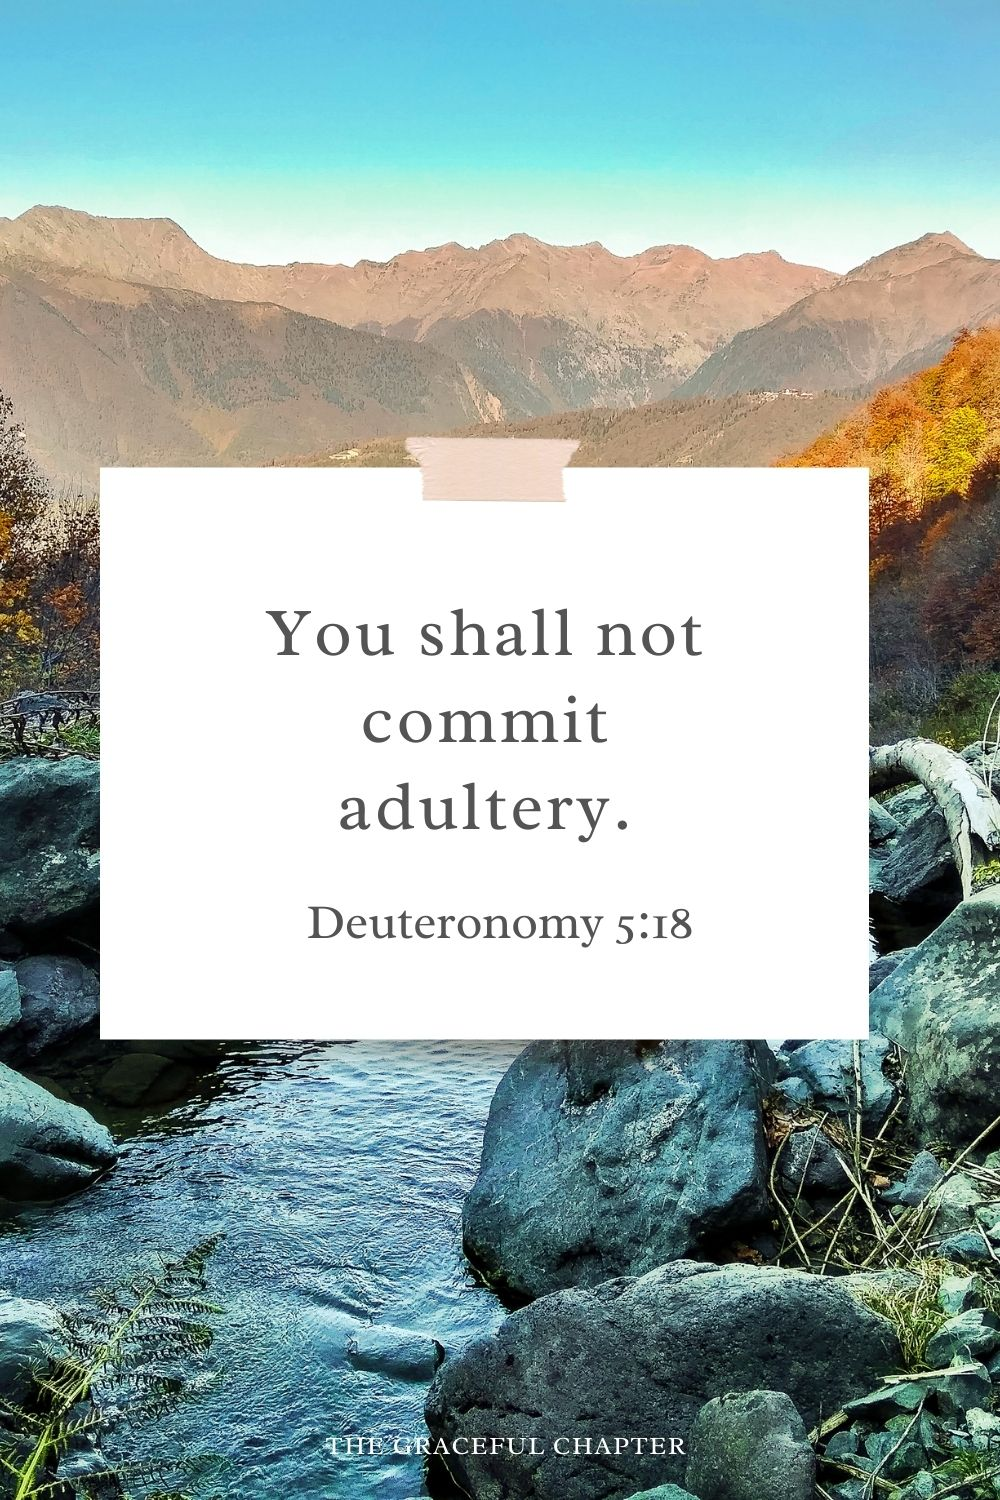 You shall not commit adultery. Deuteronomy 5:18